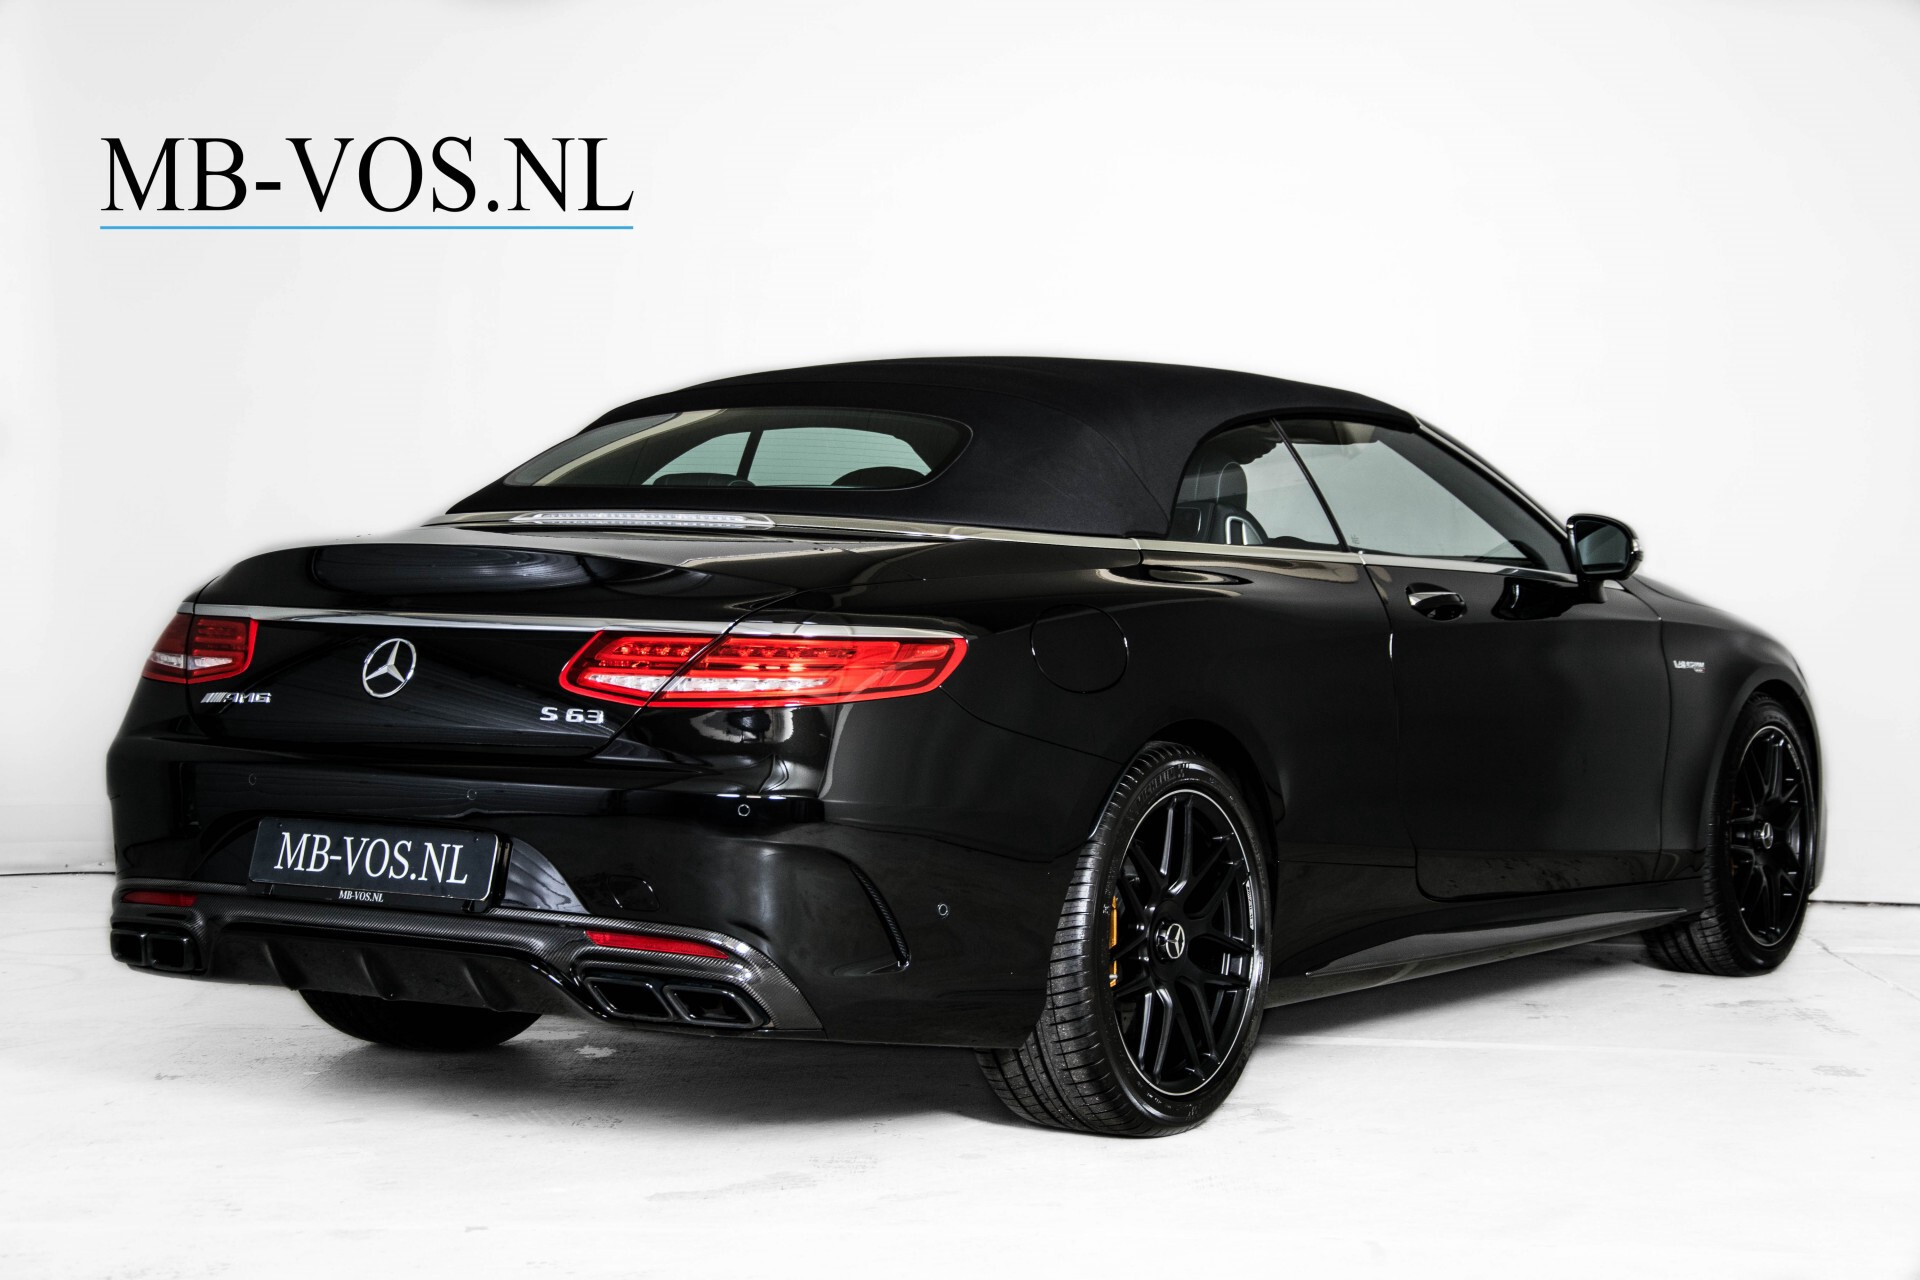 Mercedes-Benz S-Klasse Cabrio 63 AMG 4-M Ceramic/Designo/Carbon/High End/TV Aut7 Foto 4